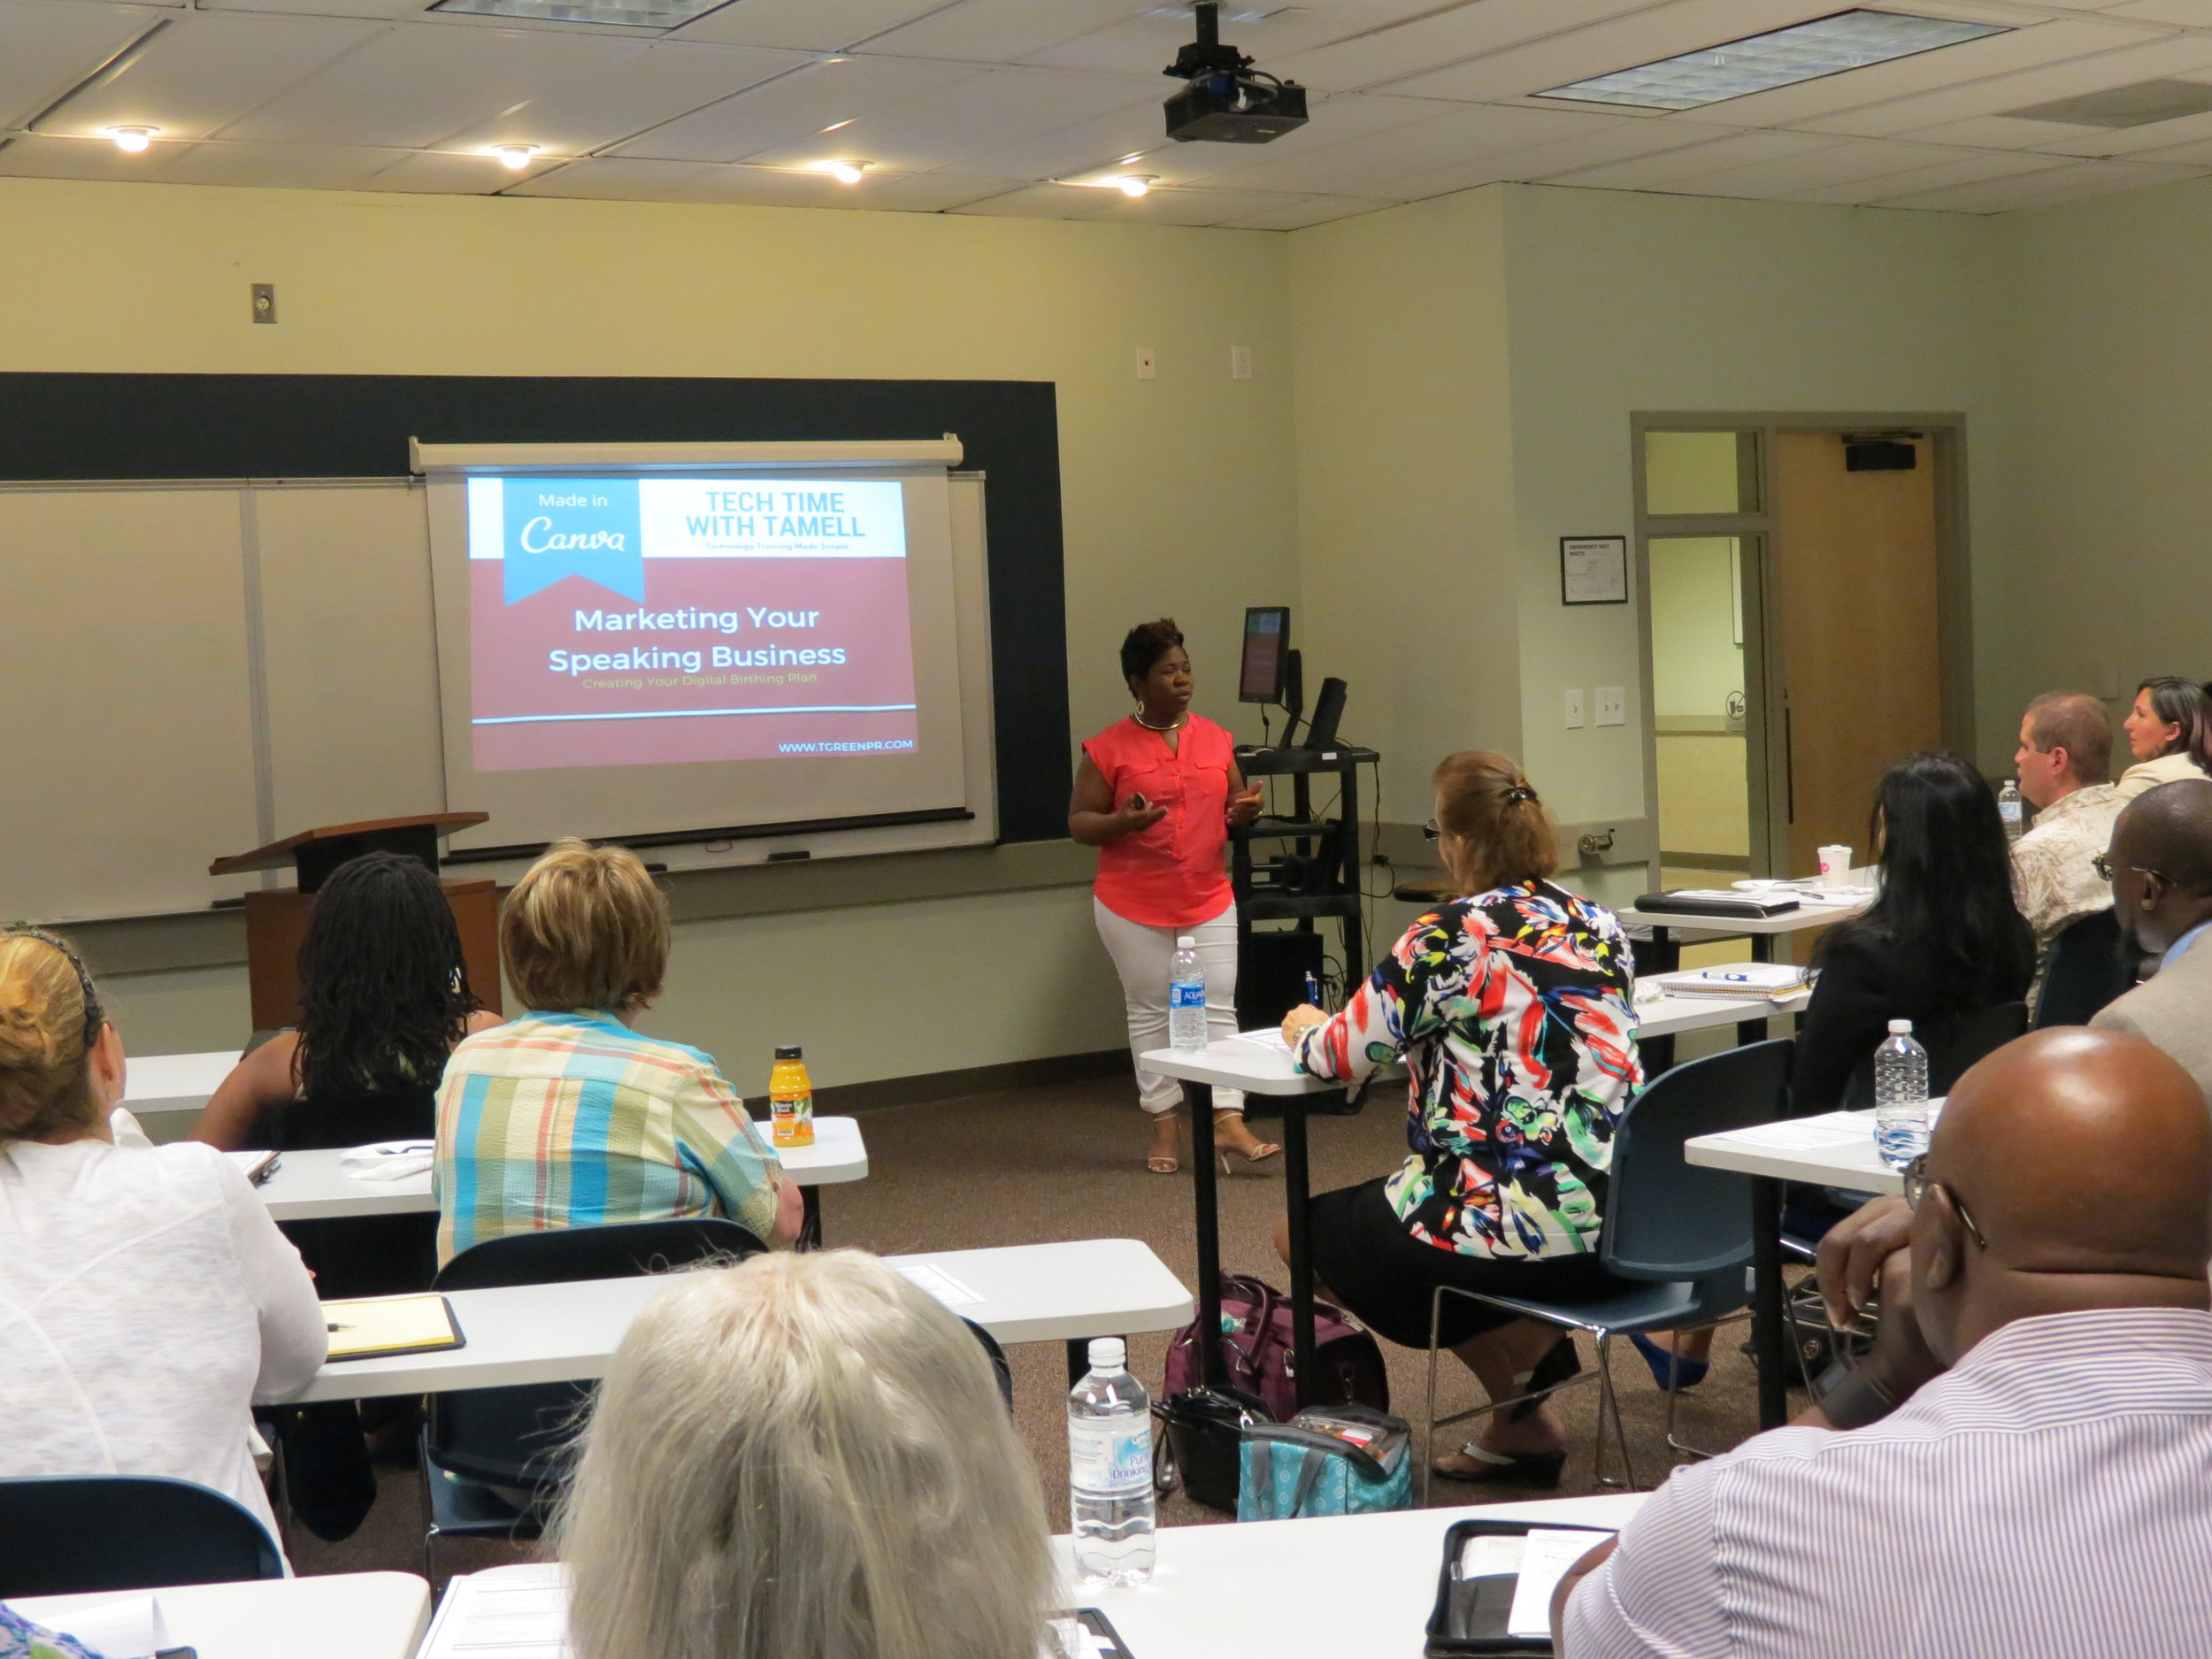 Tamell speaking to a local Toastmasters group about marketing their speaking business